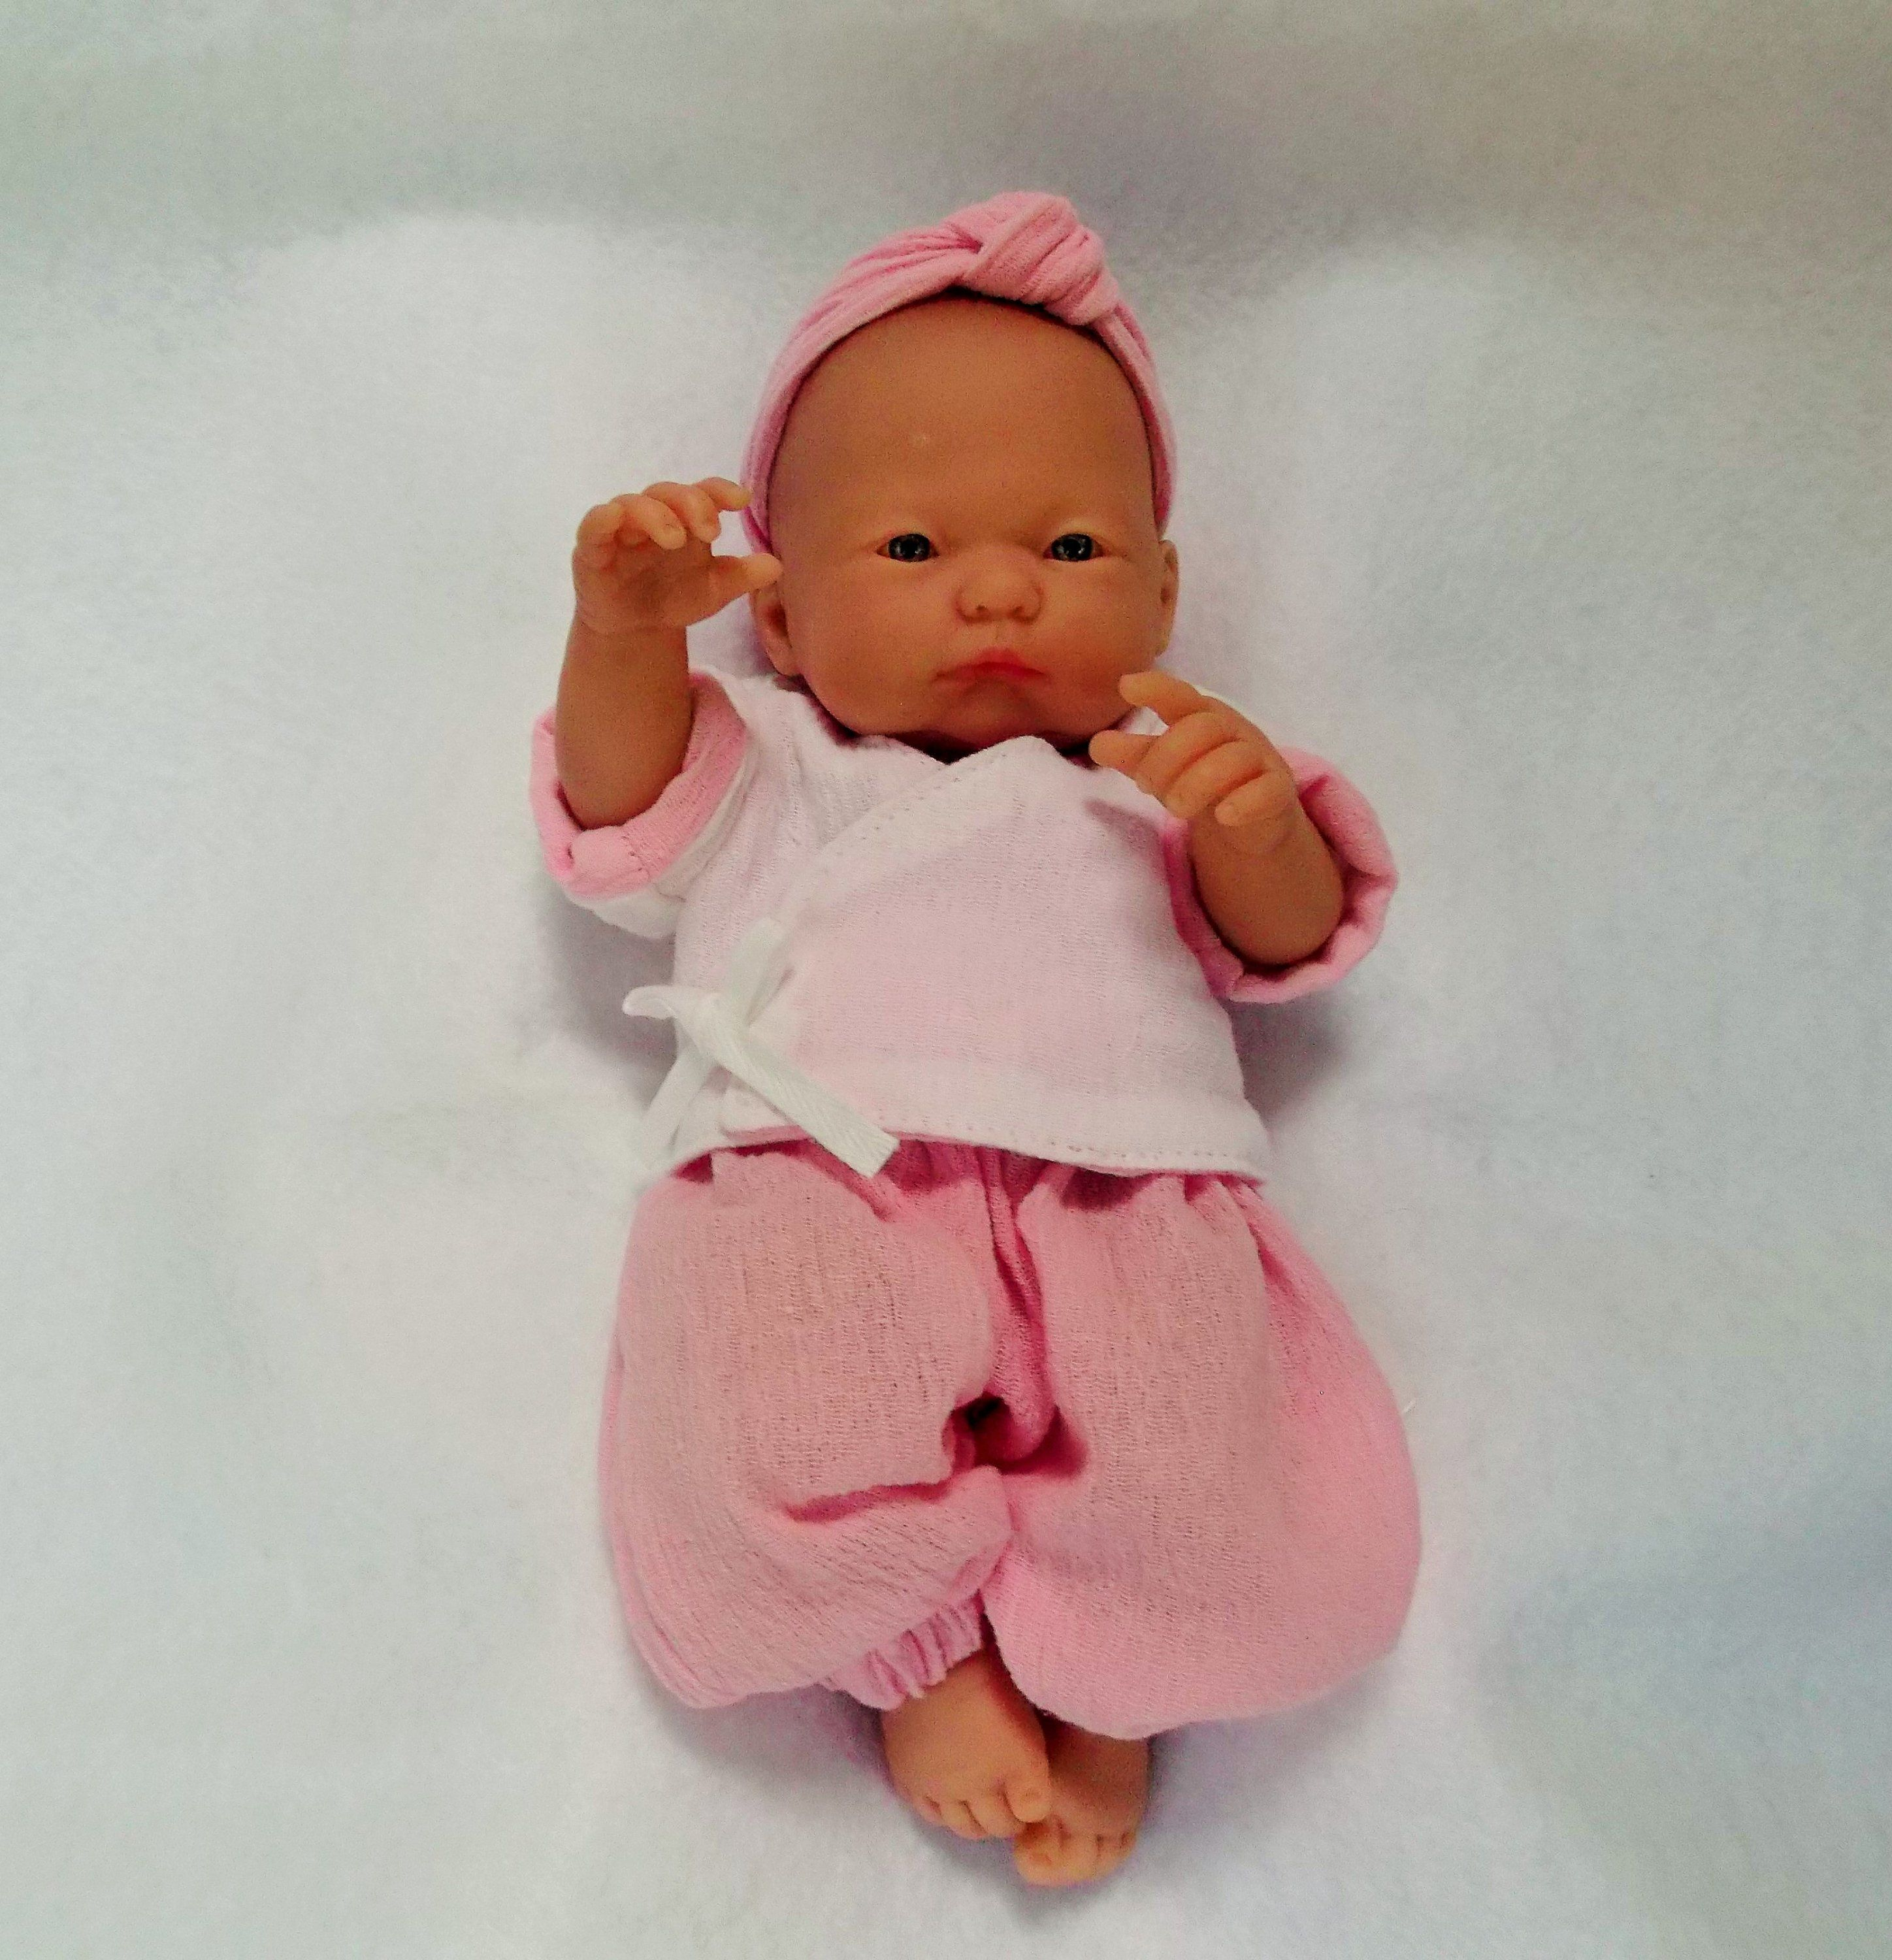 Baby Doll Harem Pants Kimono Top Headband 9 To 10 Inch Doll Outfit Reborn Silicone Doll Outfit Pink Doll Clothes Baby Doll Clothes Doll Clothes Pink Doll